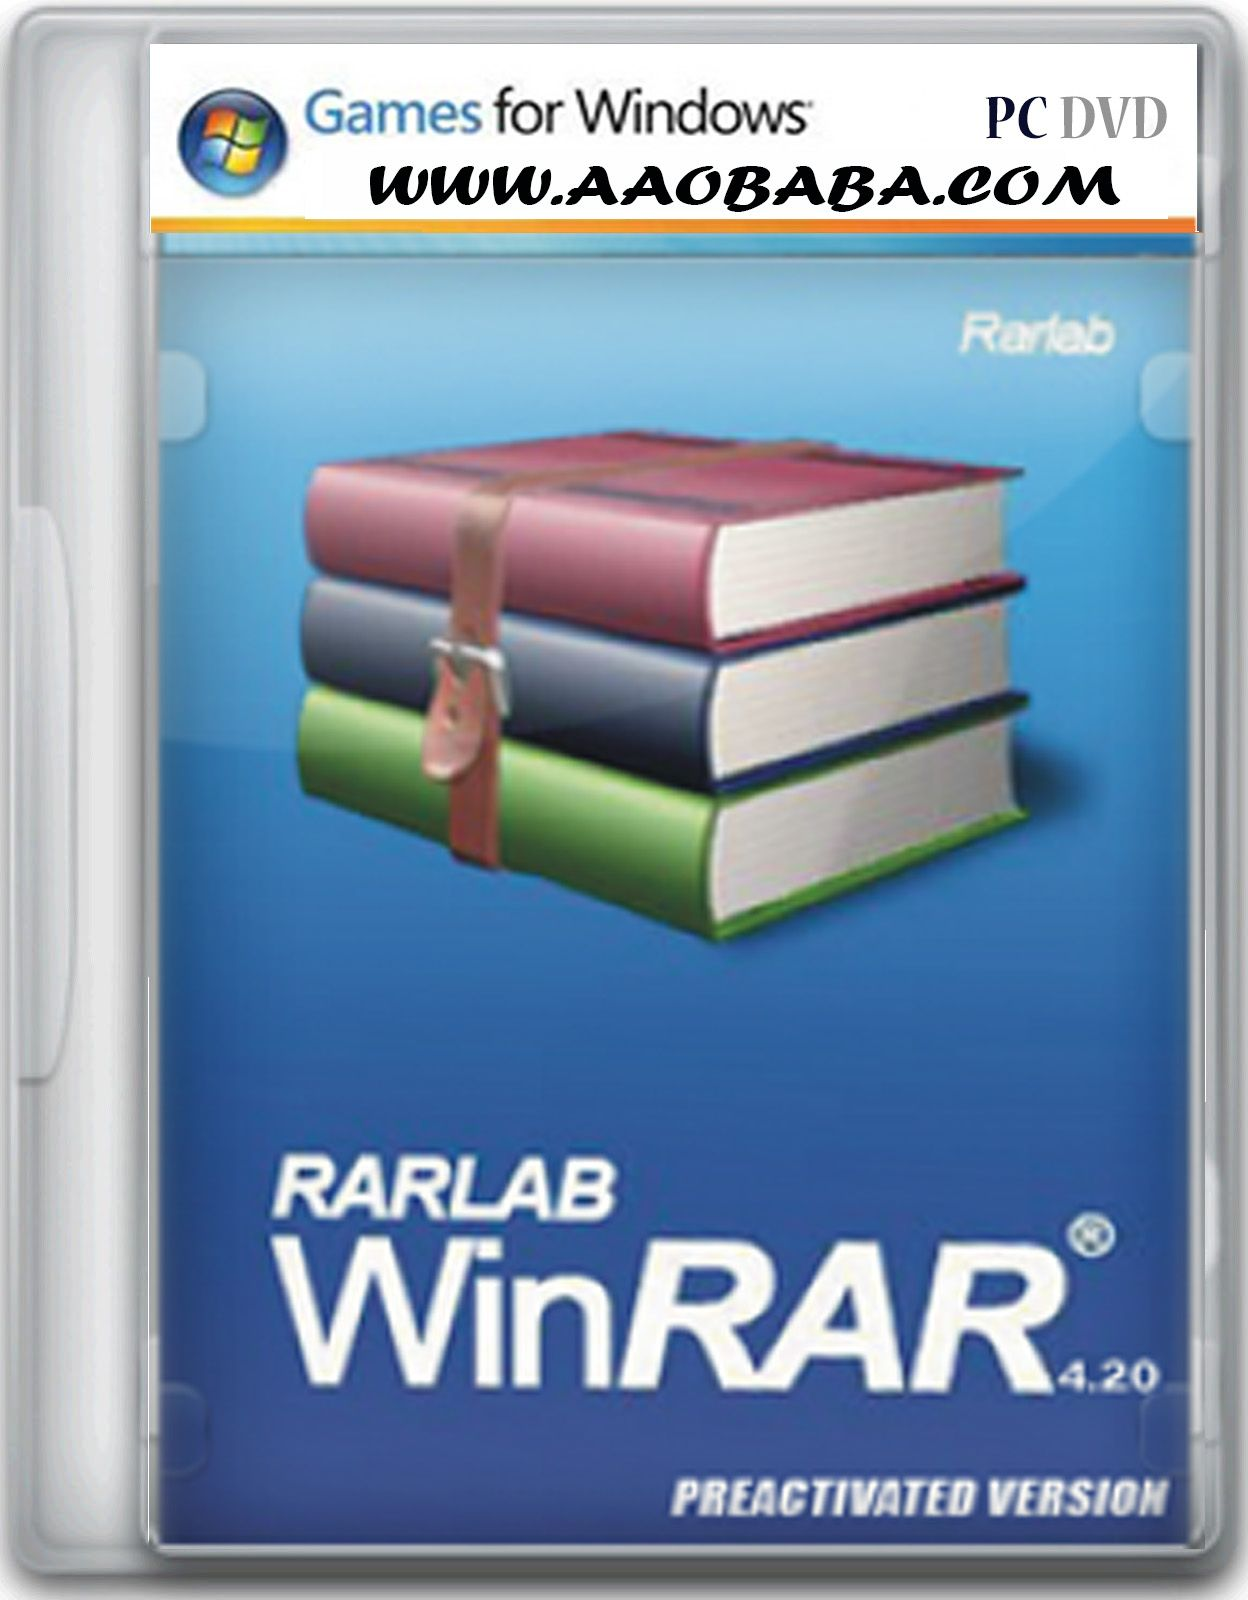 download winrar windows 7 32 bit